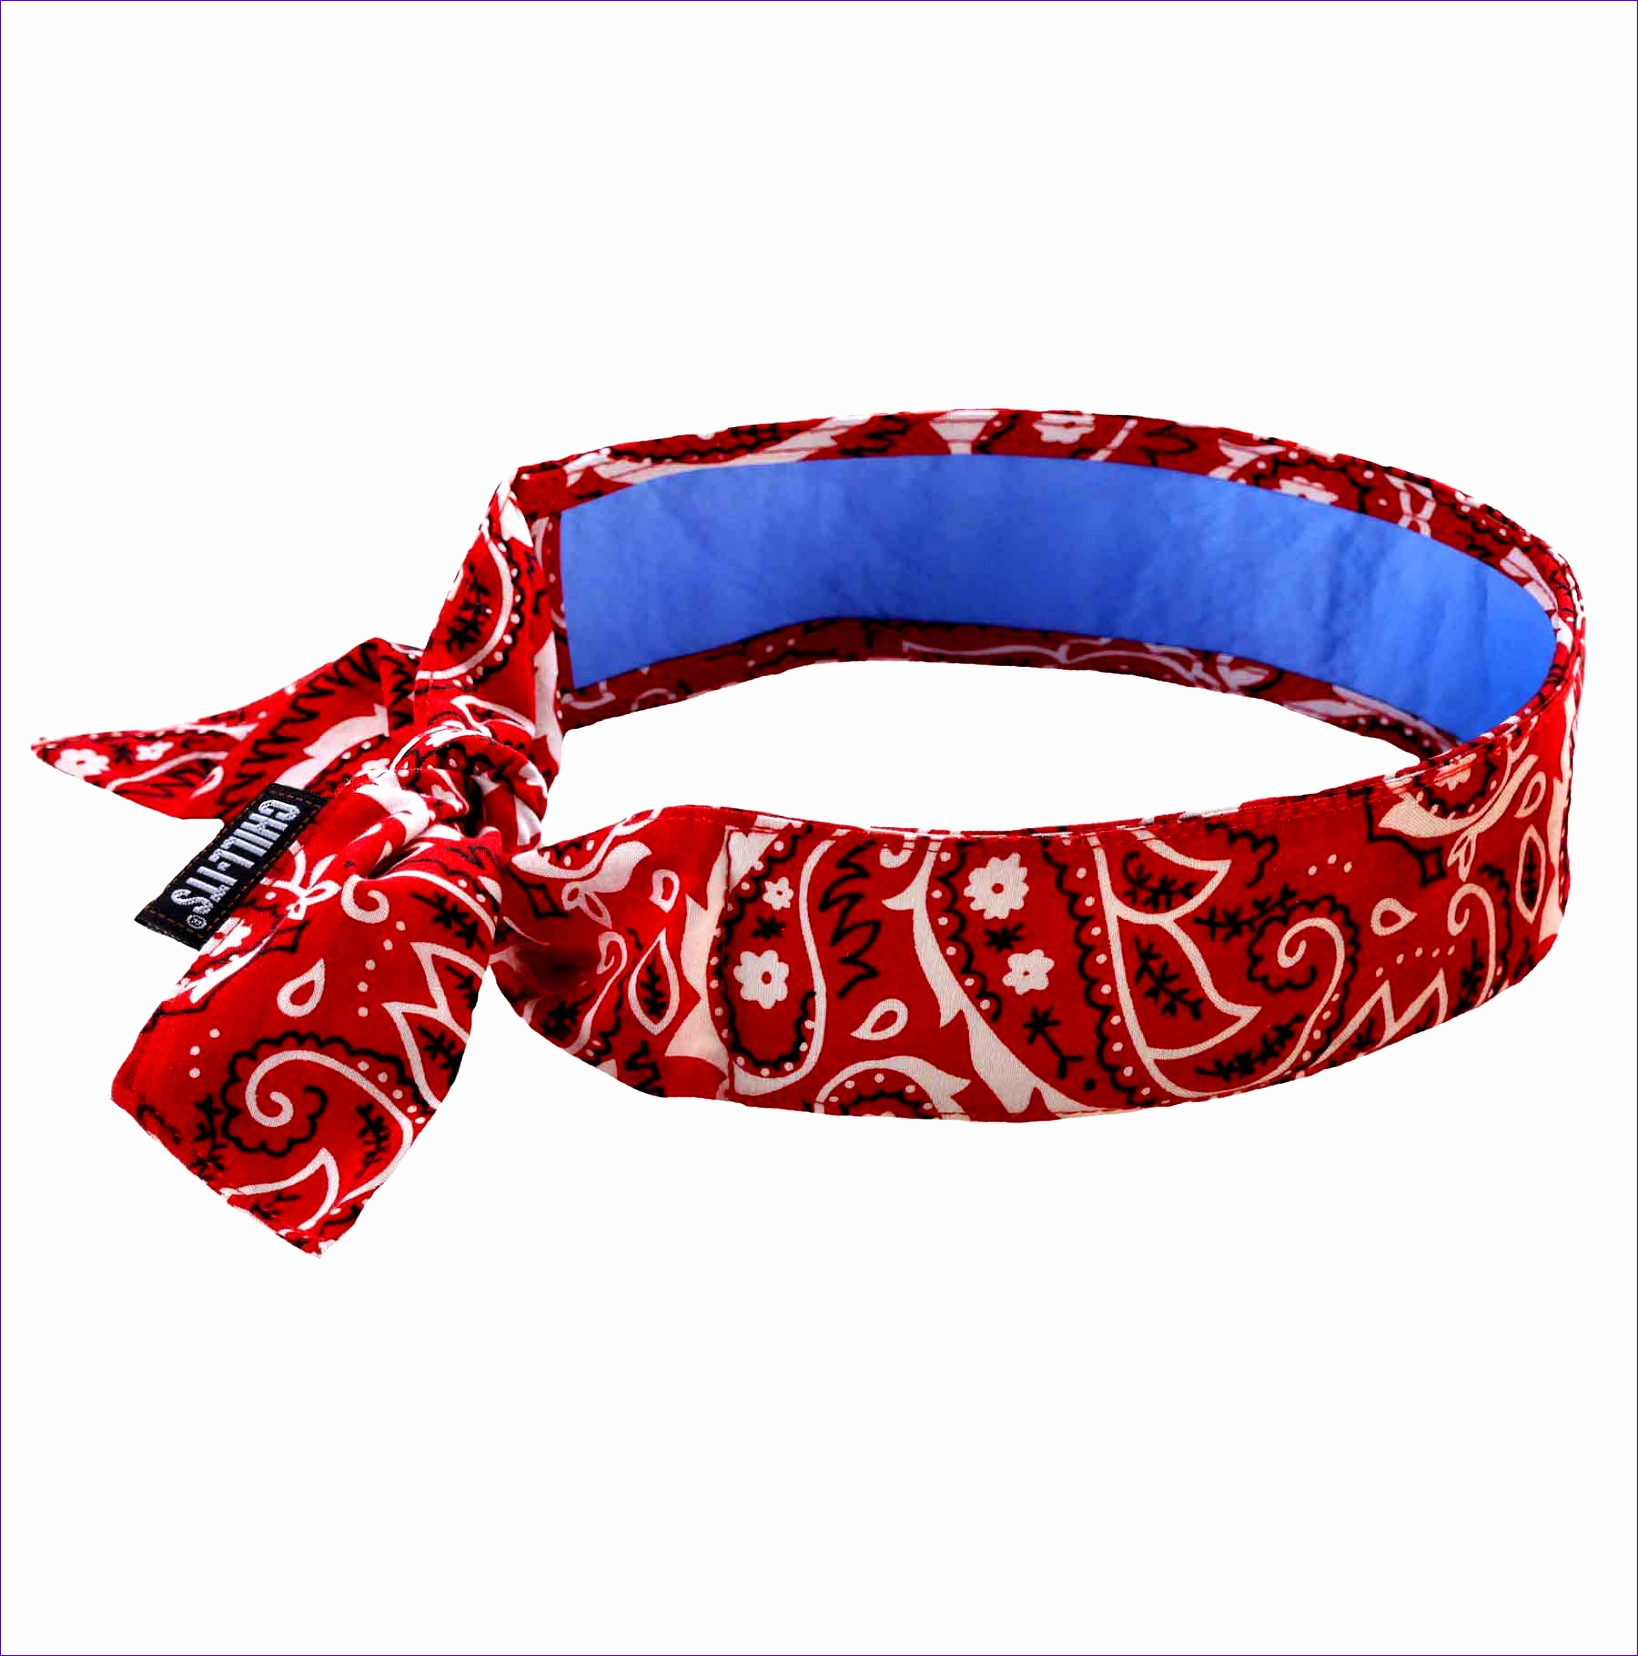 chill its 6700ct evaporative cooling bandana cooling towel tie